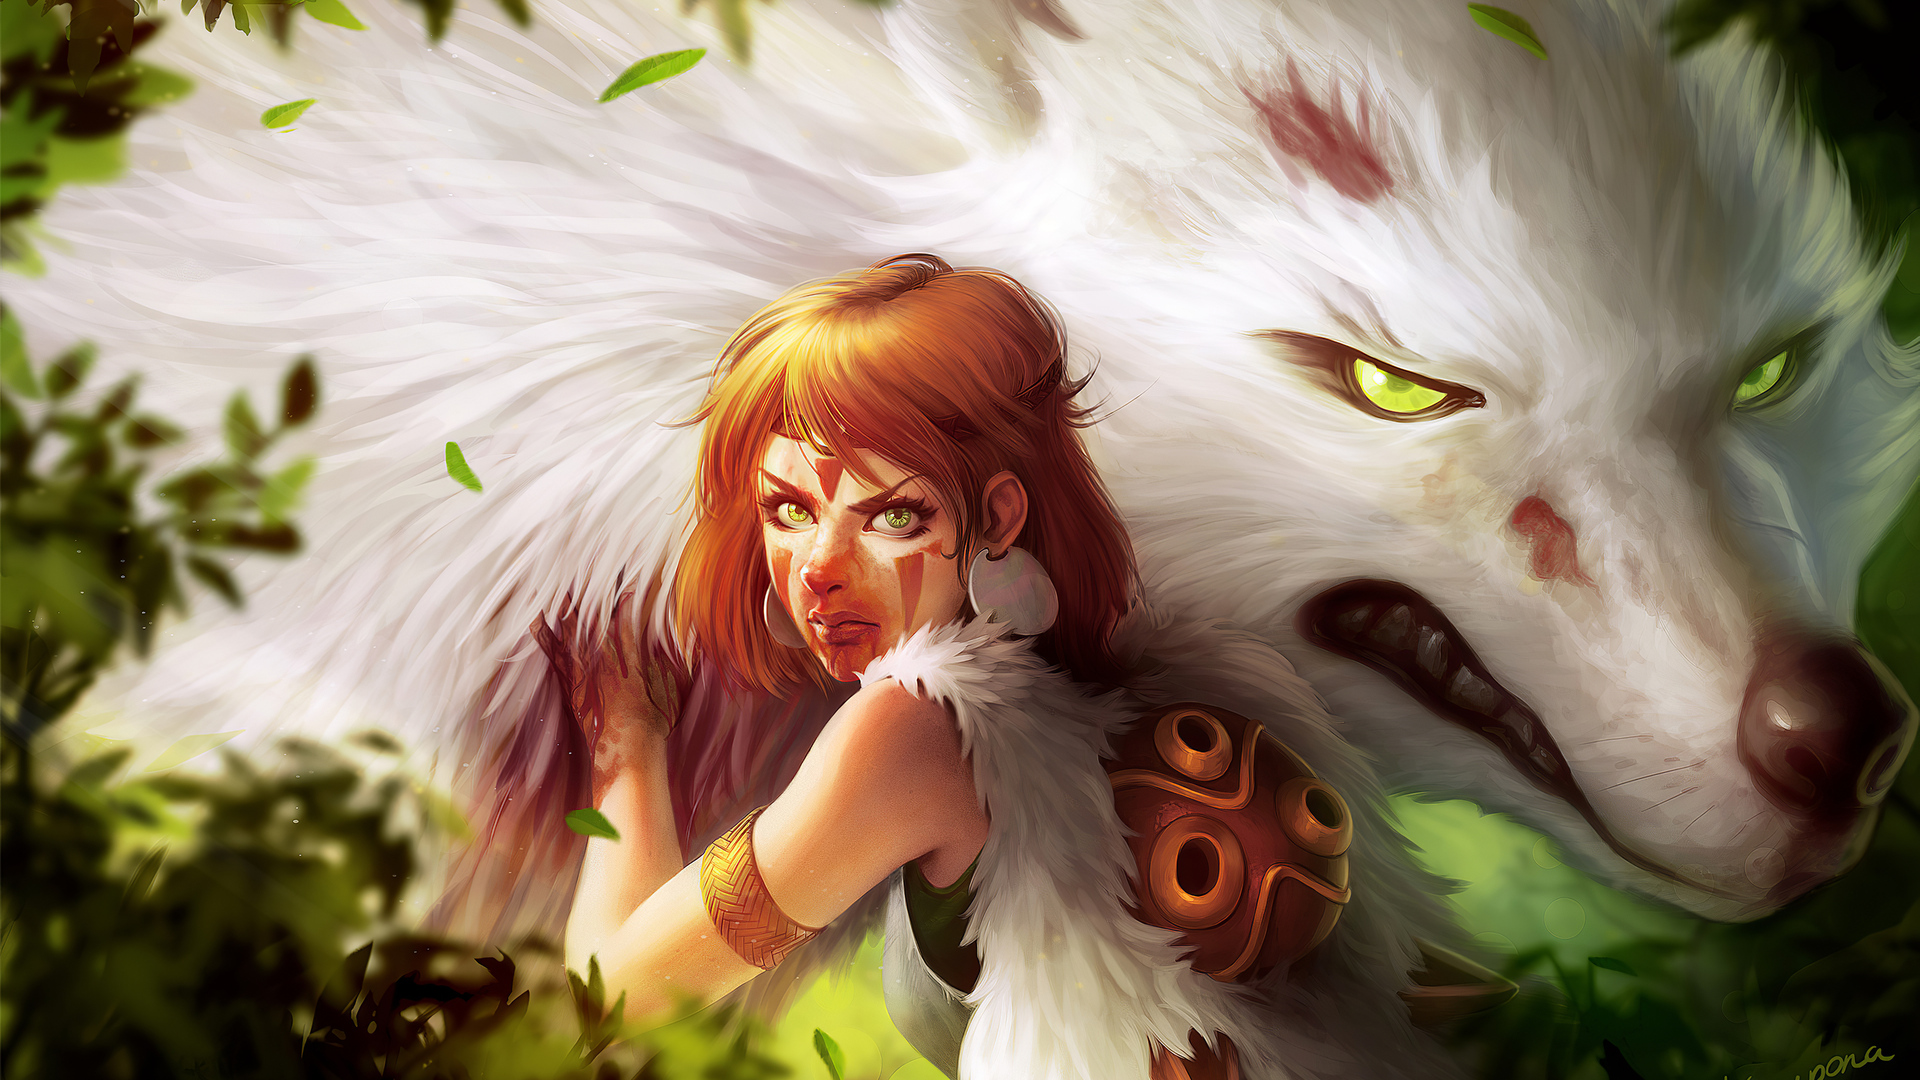 1920x1080 Princess Mononoke 4k Laptop Full Hd 1080p Hd 4k Wallpapers Images Backgrounds Photos And Pictures